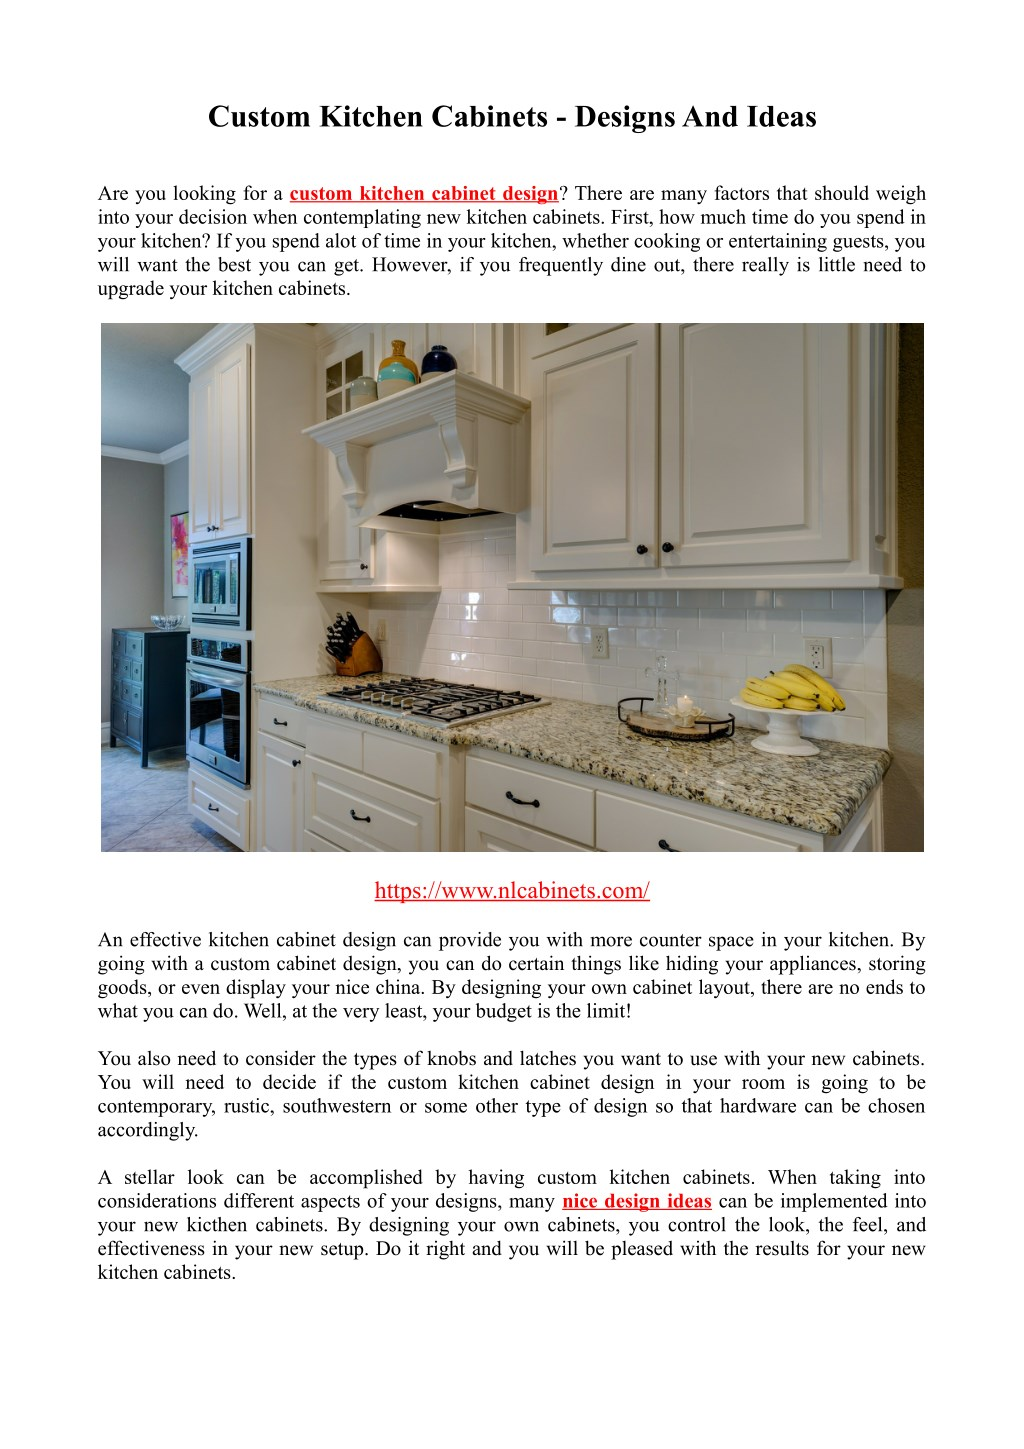 Ppt Custom Kitchen Cabinets Designs And Ideas Powerpoint Presentation Id 7954684